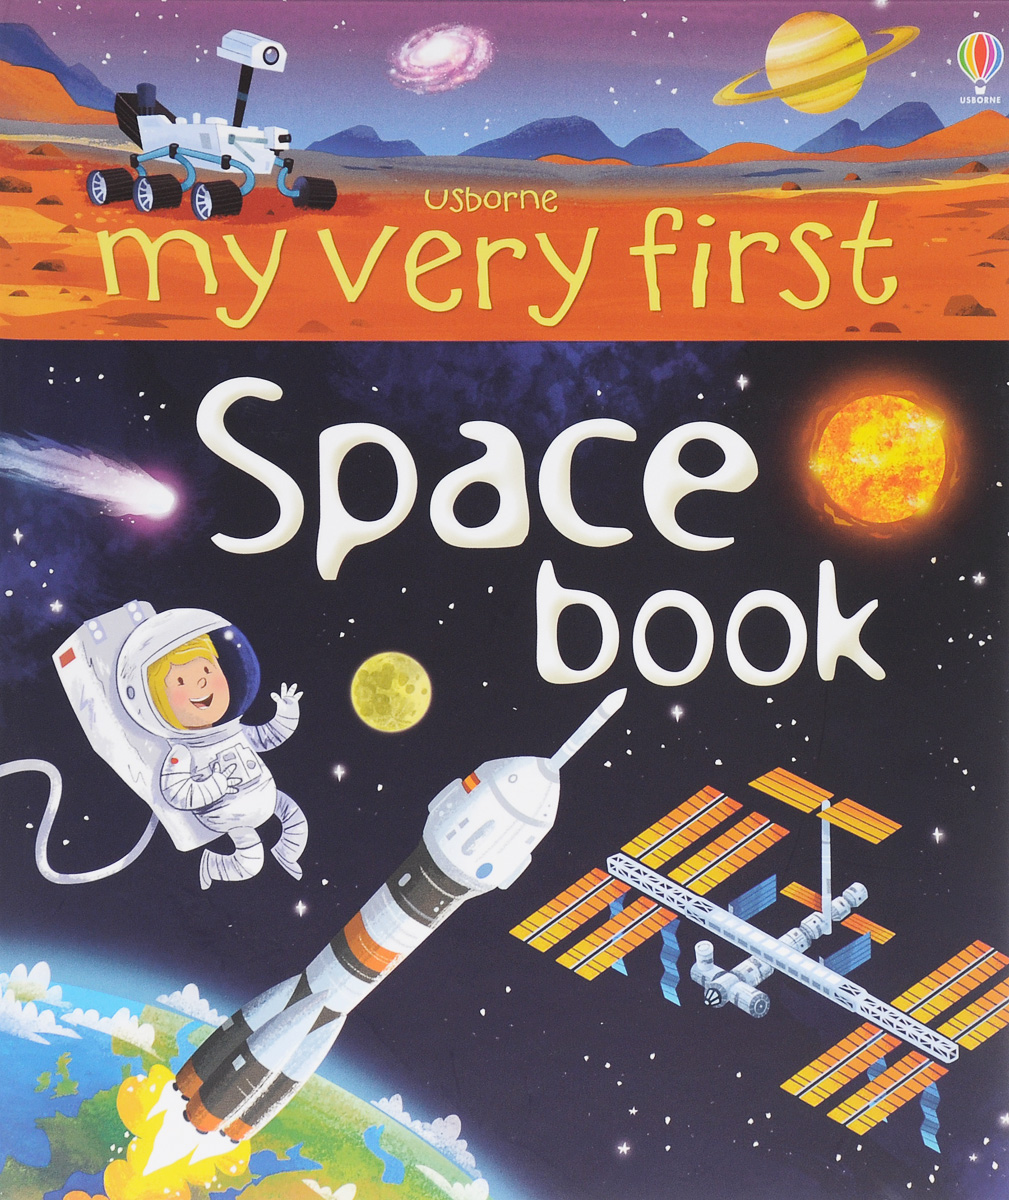 My Very First Space Book купить